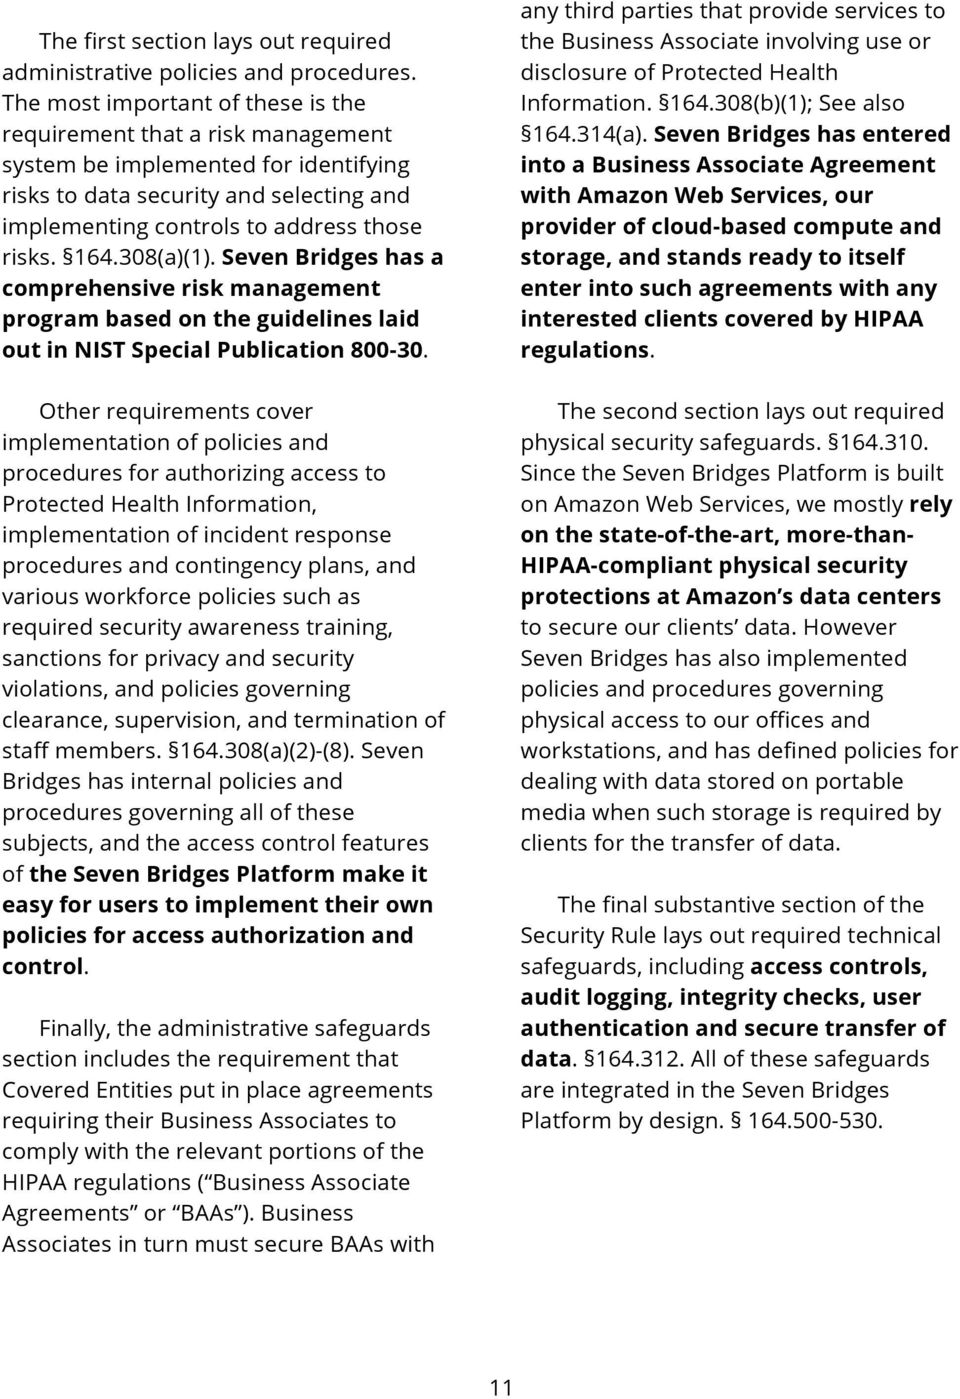 308(a)(1). Seven Bridges has a comprehensive risk management program based on the guidelines laid out in NIST Special Publication 800-30.